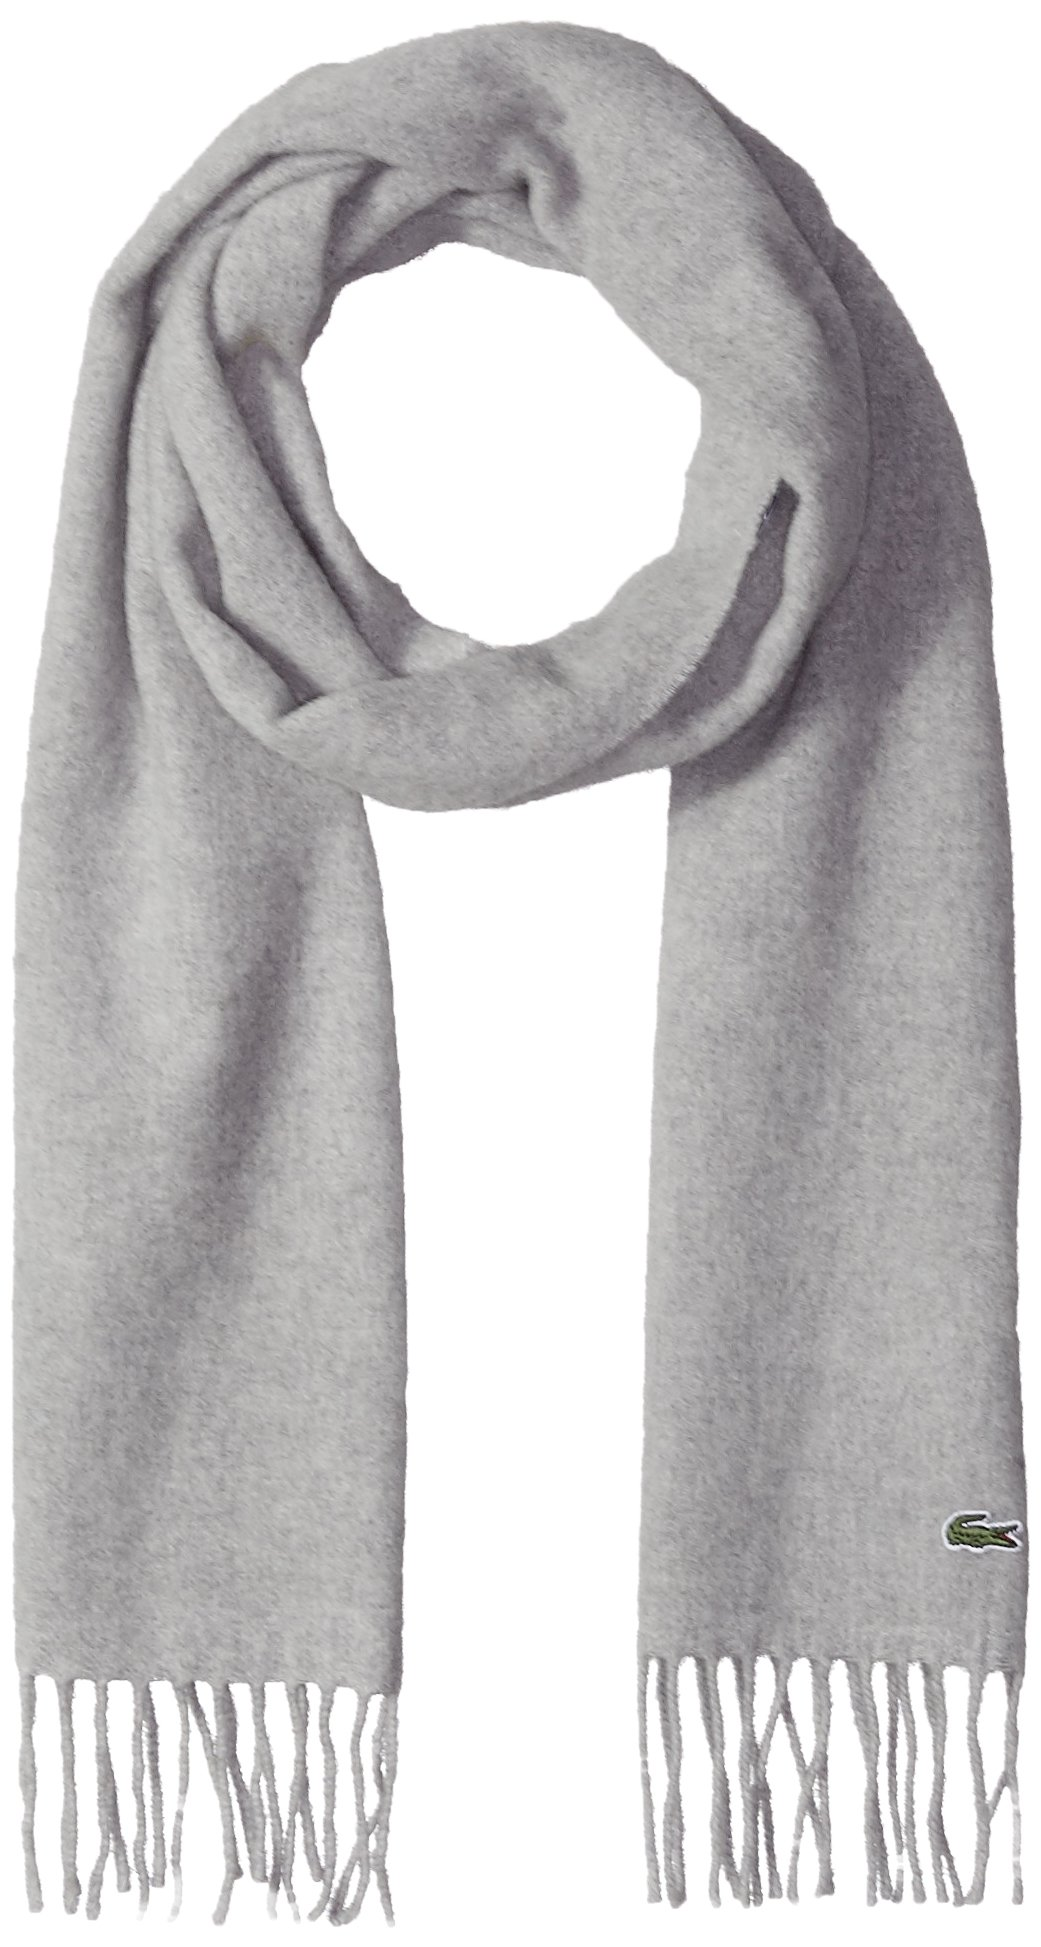 Lacoste Men's Flannel Wool Cashmere Scarf, Silver Chine, One Size by Lacoste